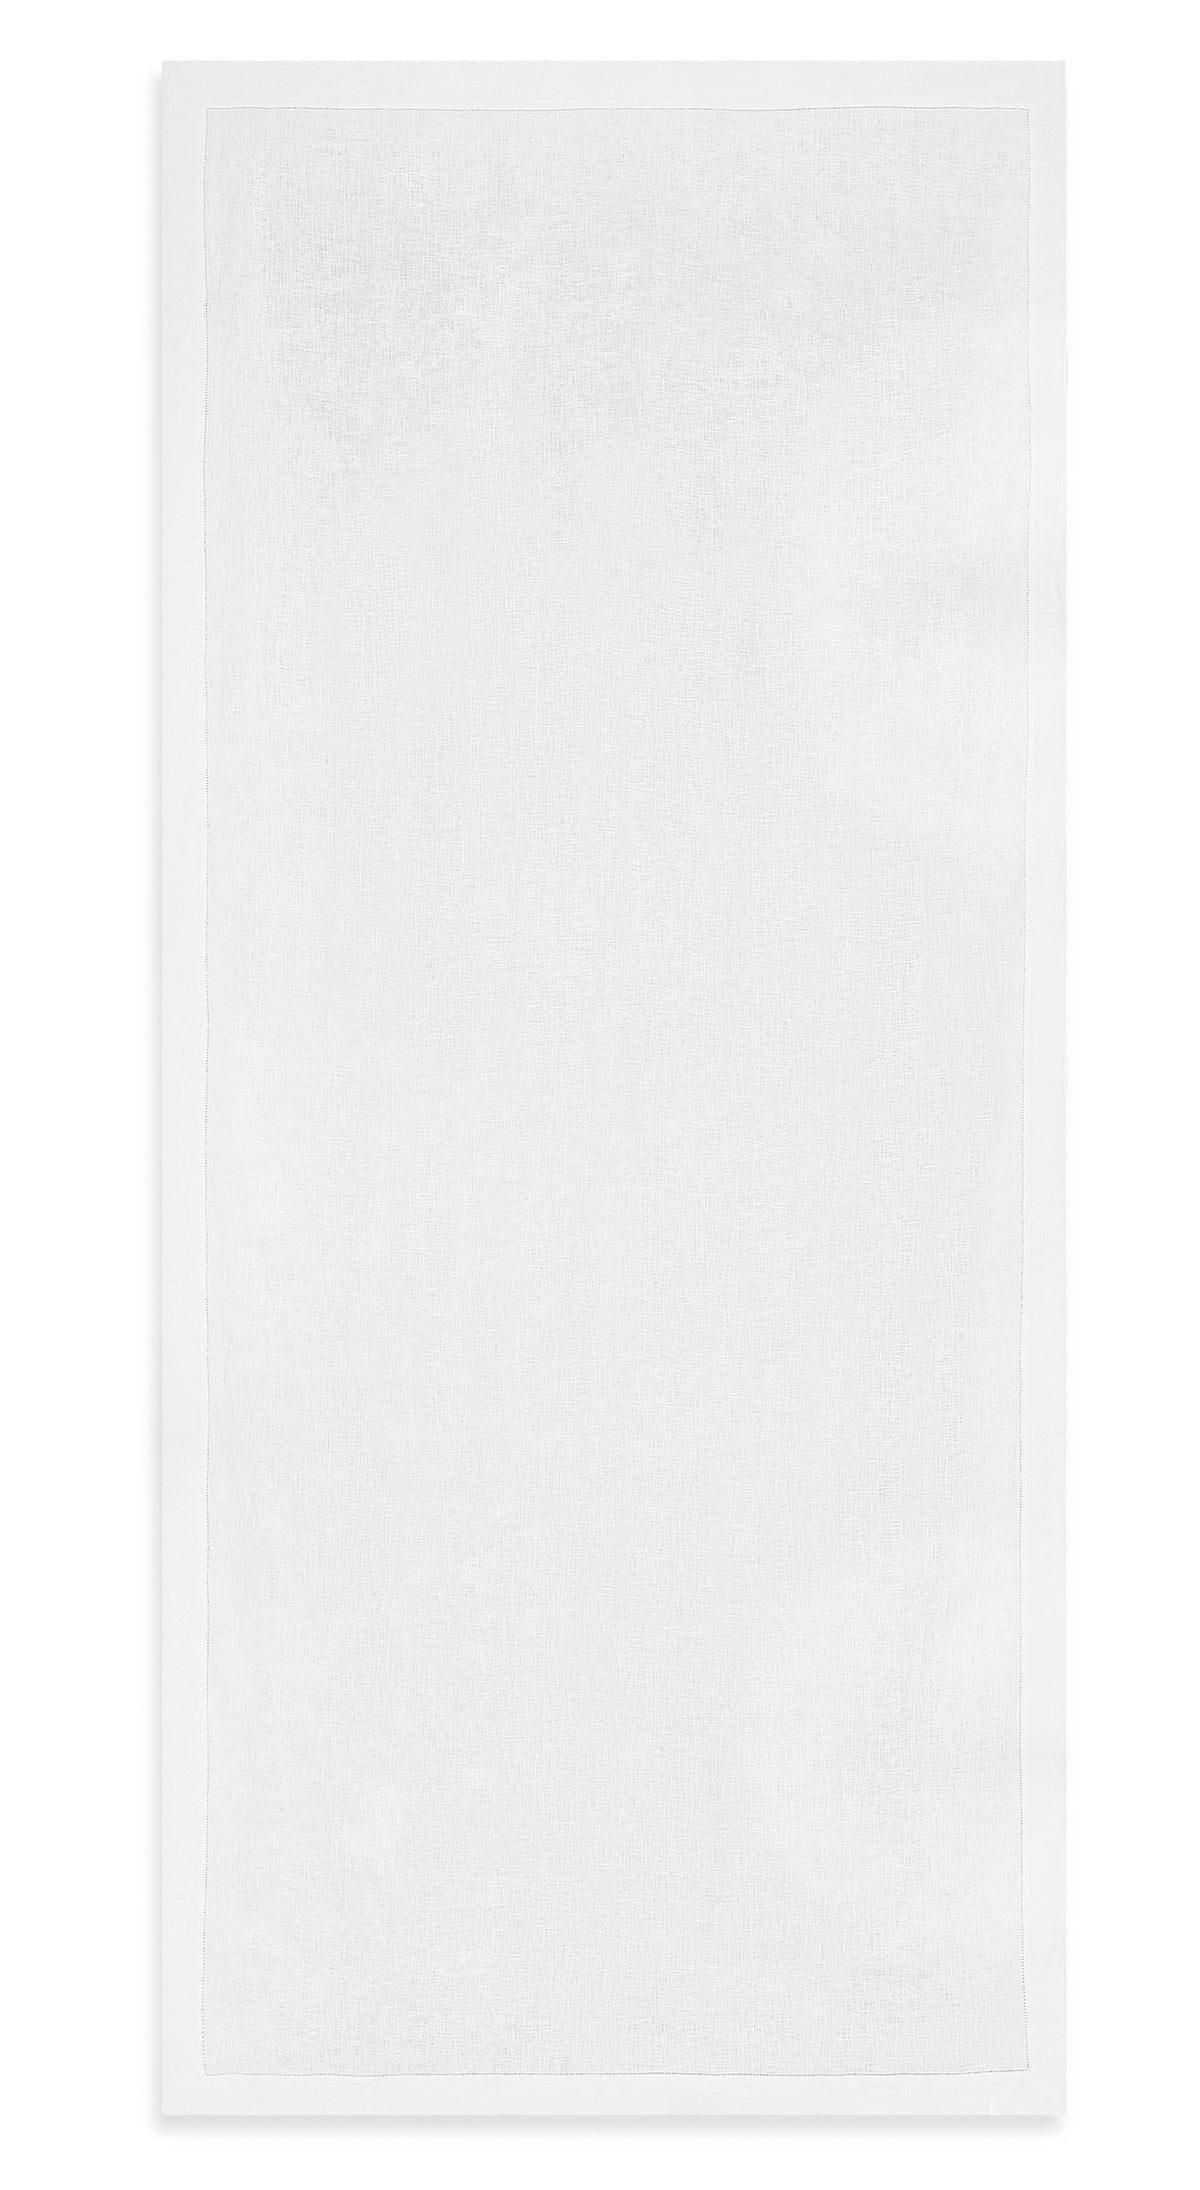 S&B Beautiful White Hemstitch Linen Tablecloth